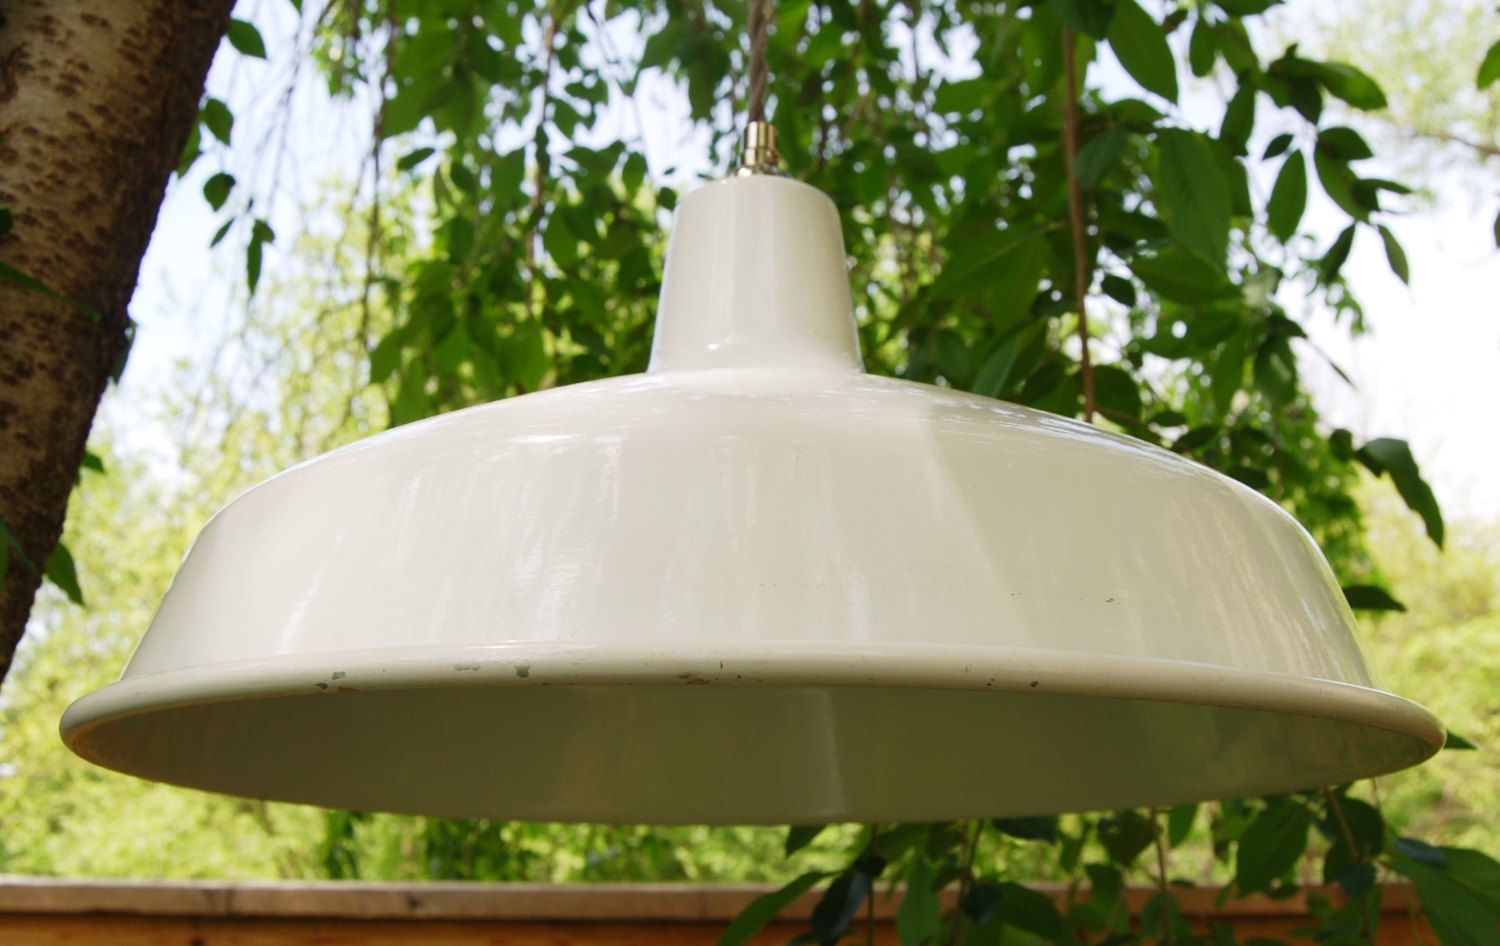 Insulator pendant light w white gas station shade and clear